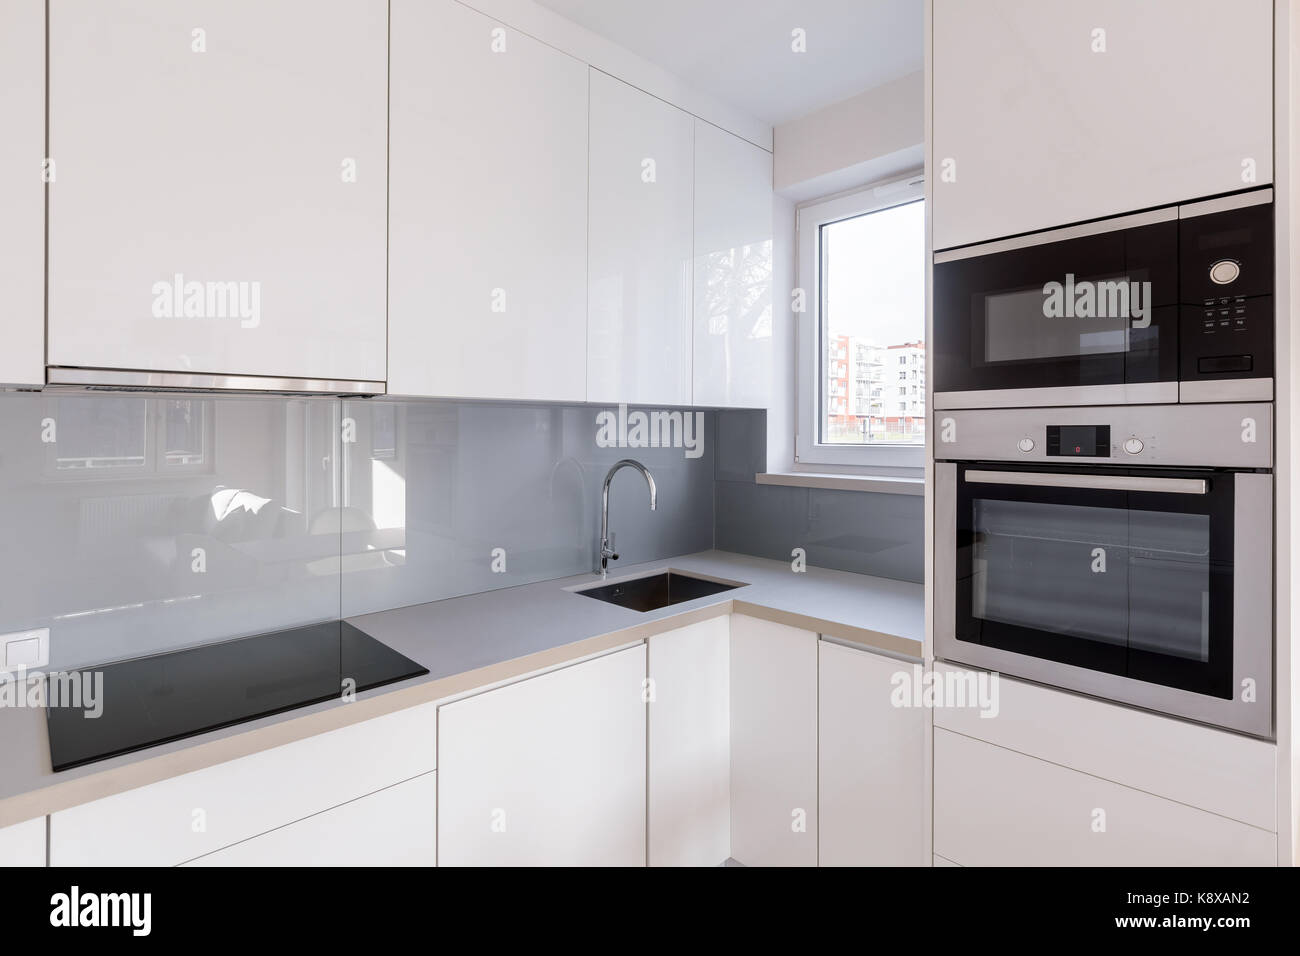 Modern kitchen with white cupboards, high gloss tiles and new